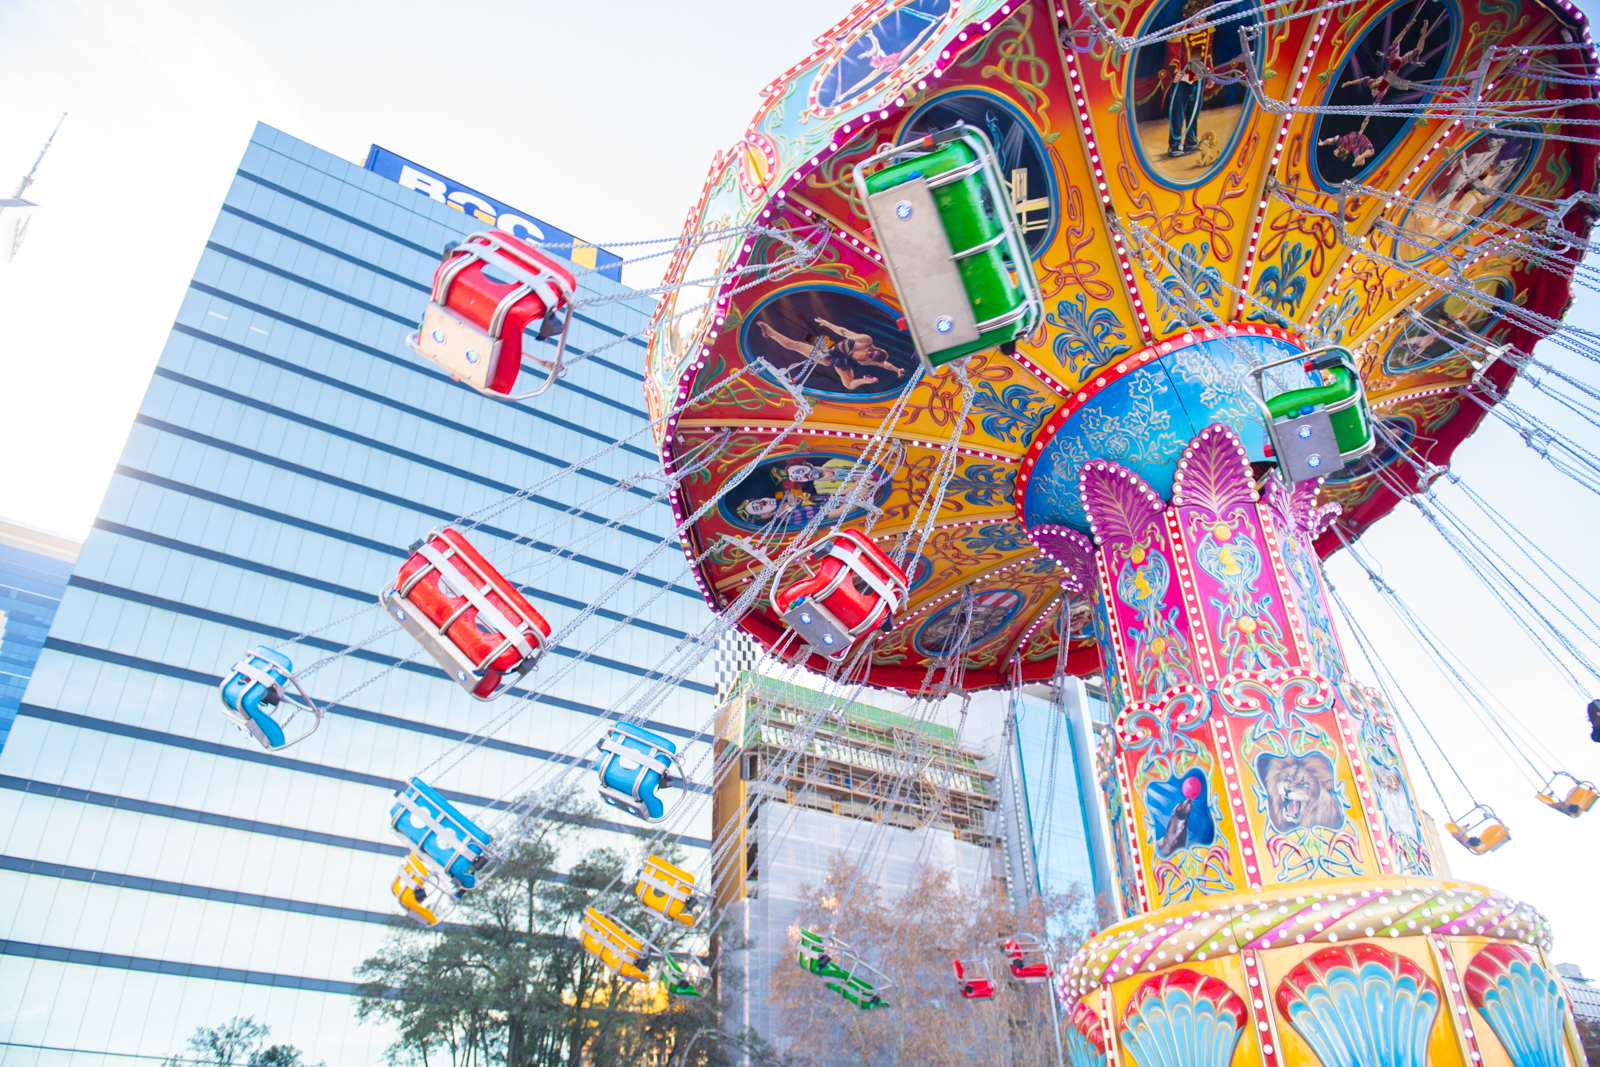 The Dream Swinger ride at Elizabeth Quay with buildings in the background